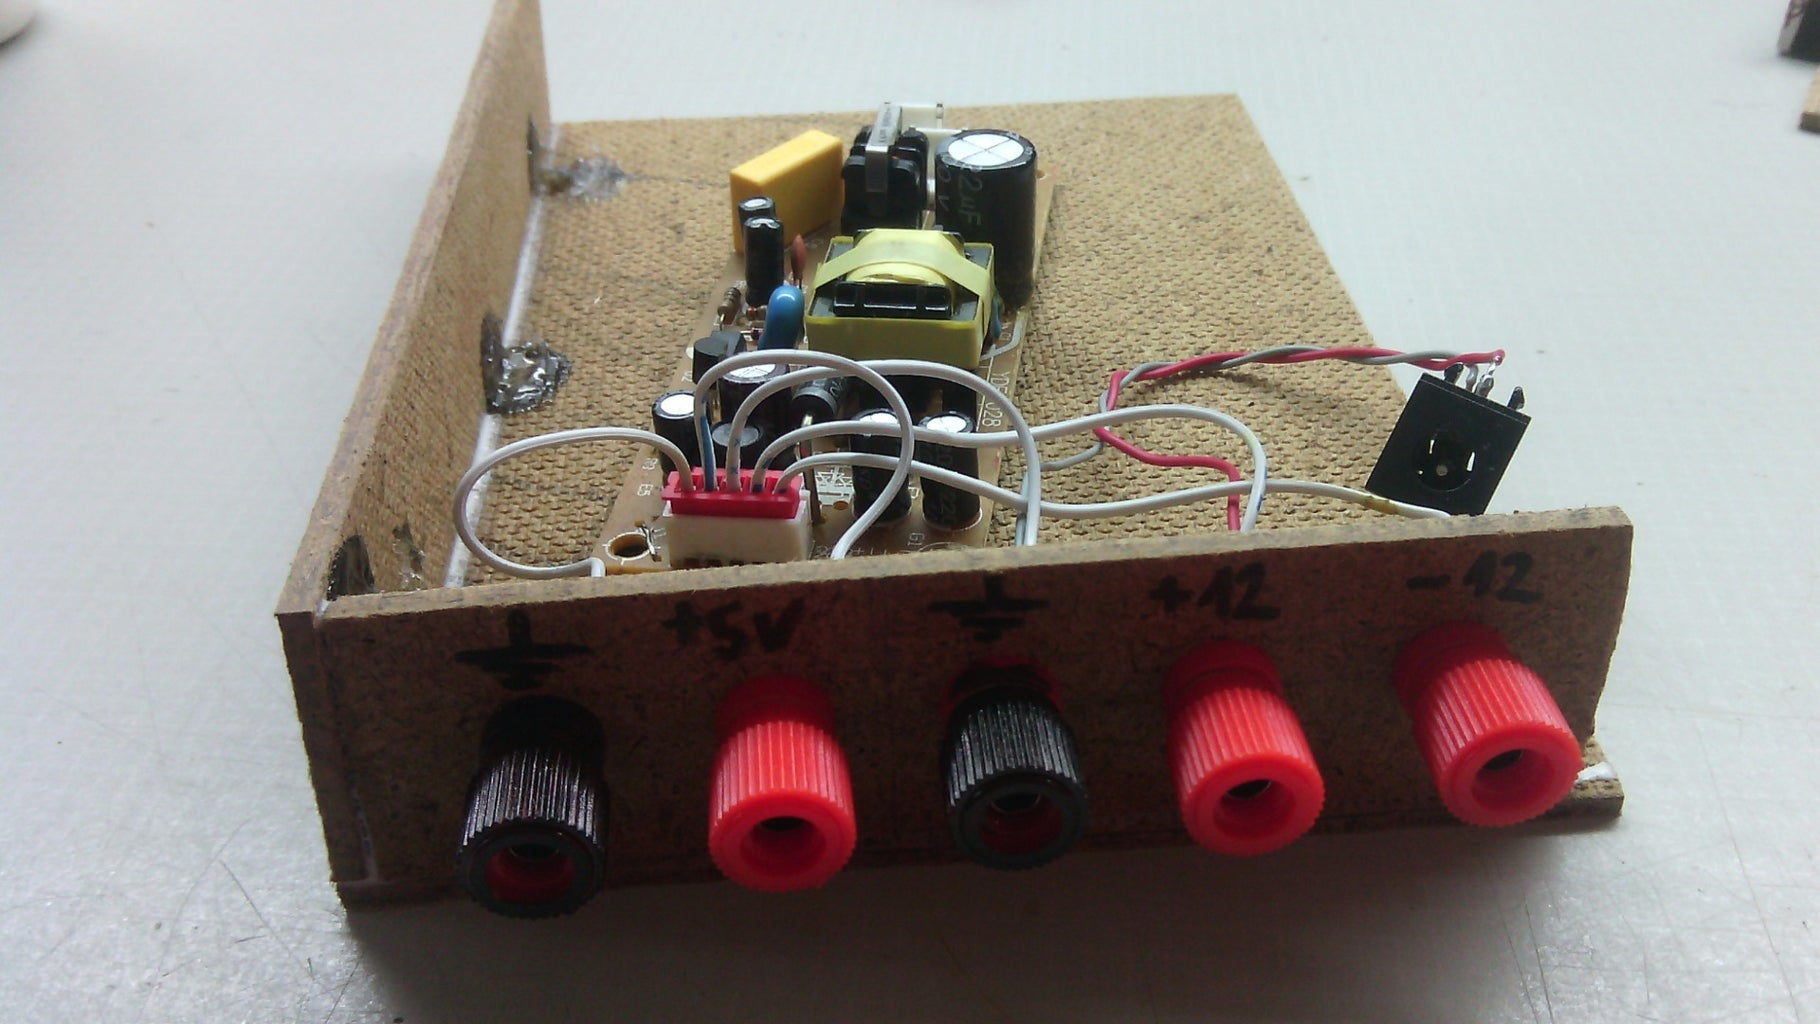 Putting Powersupply in Box and Soldering Wires